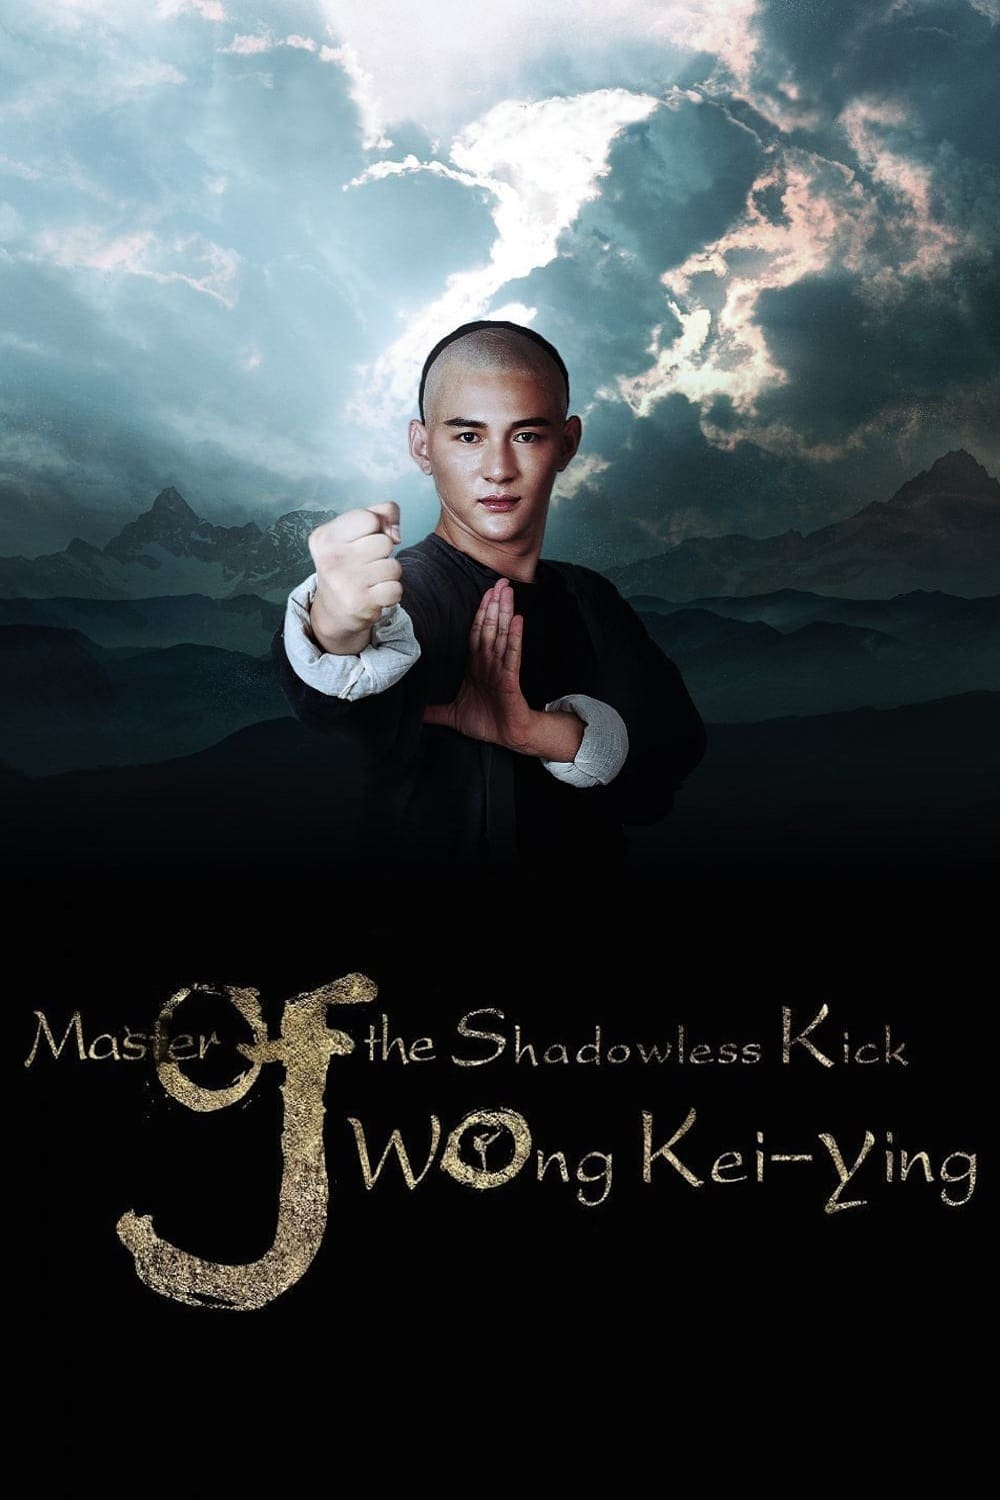 thumb Master of Shadowless Kick: Wong Kei-Ying